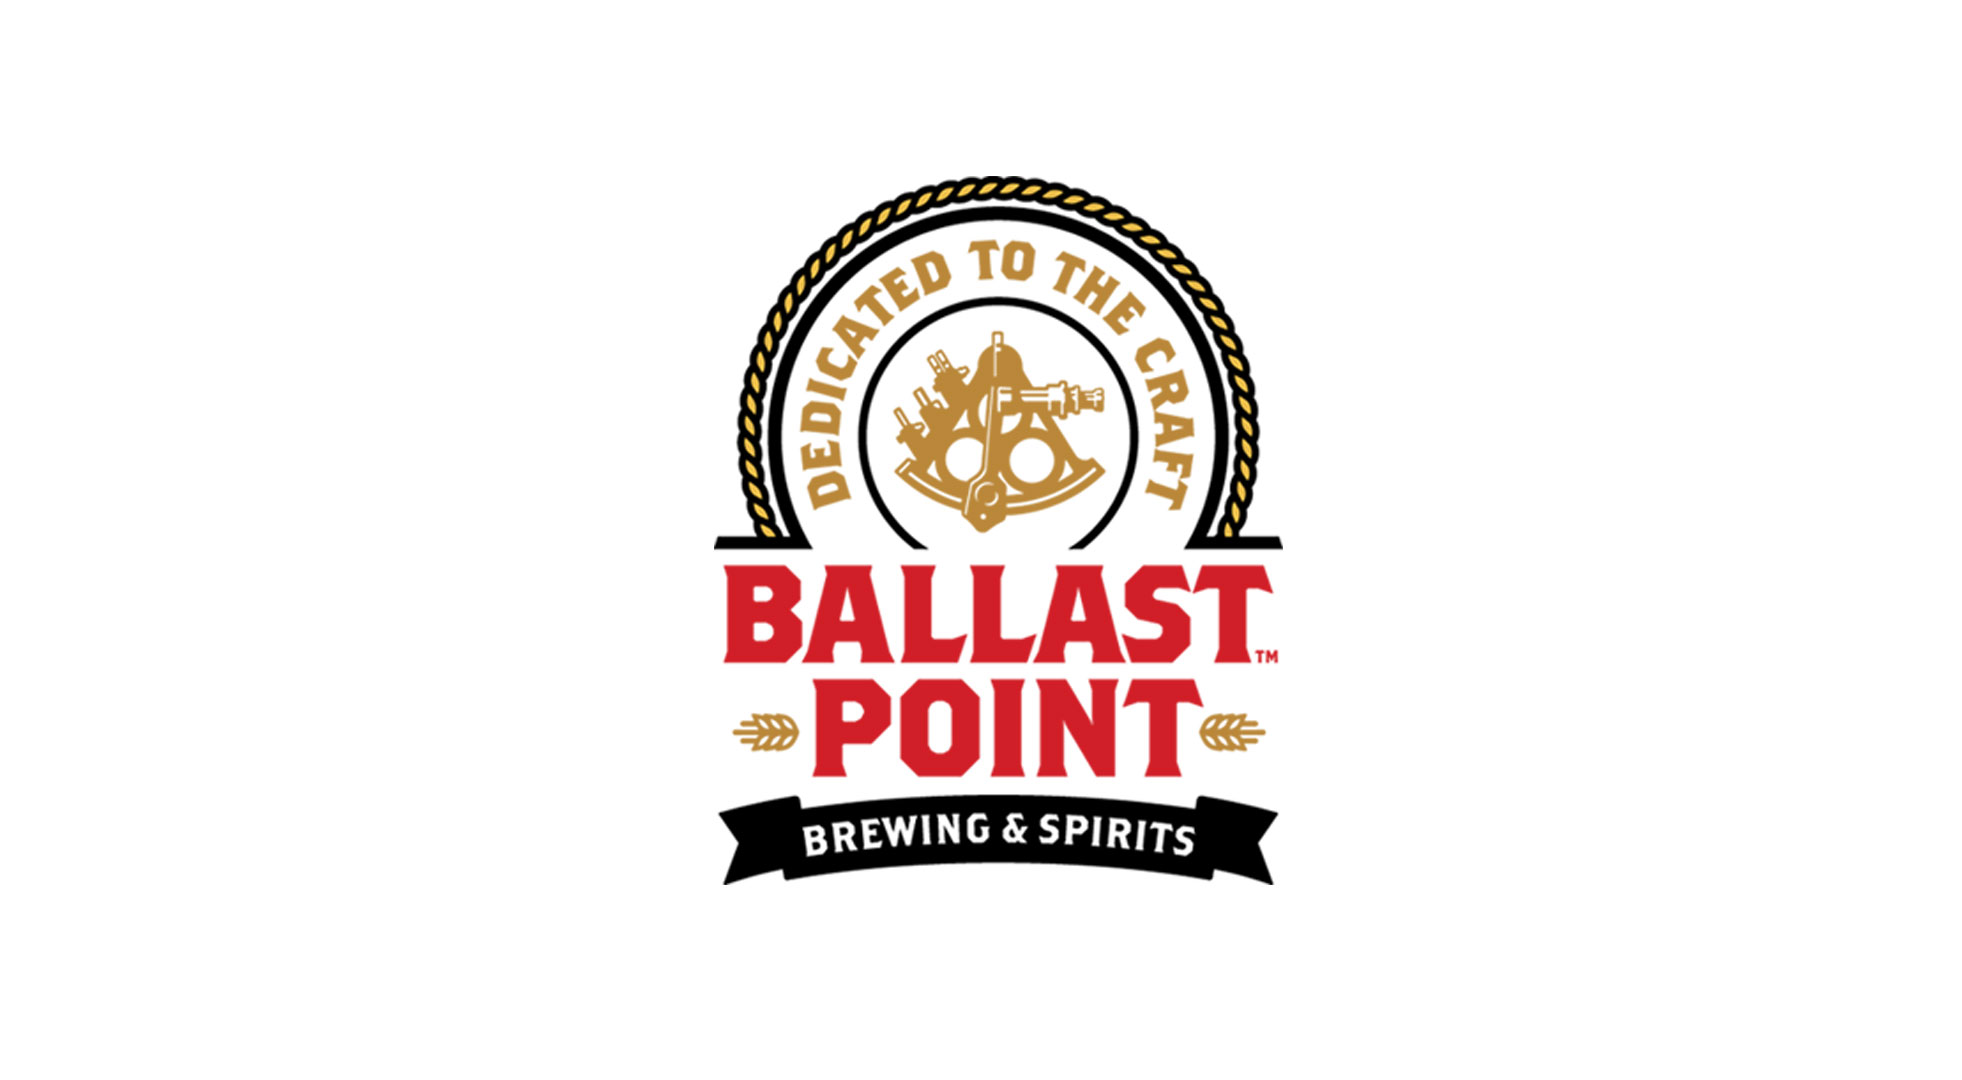 Ballast Point beer tastings today at TWCP's Forsyth location -